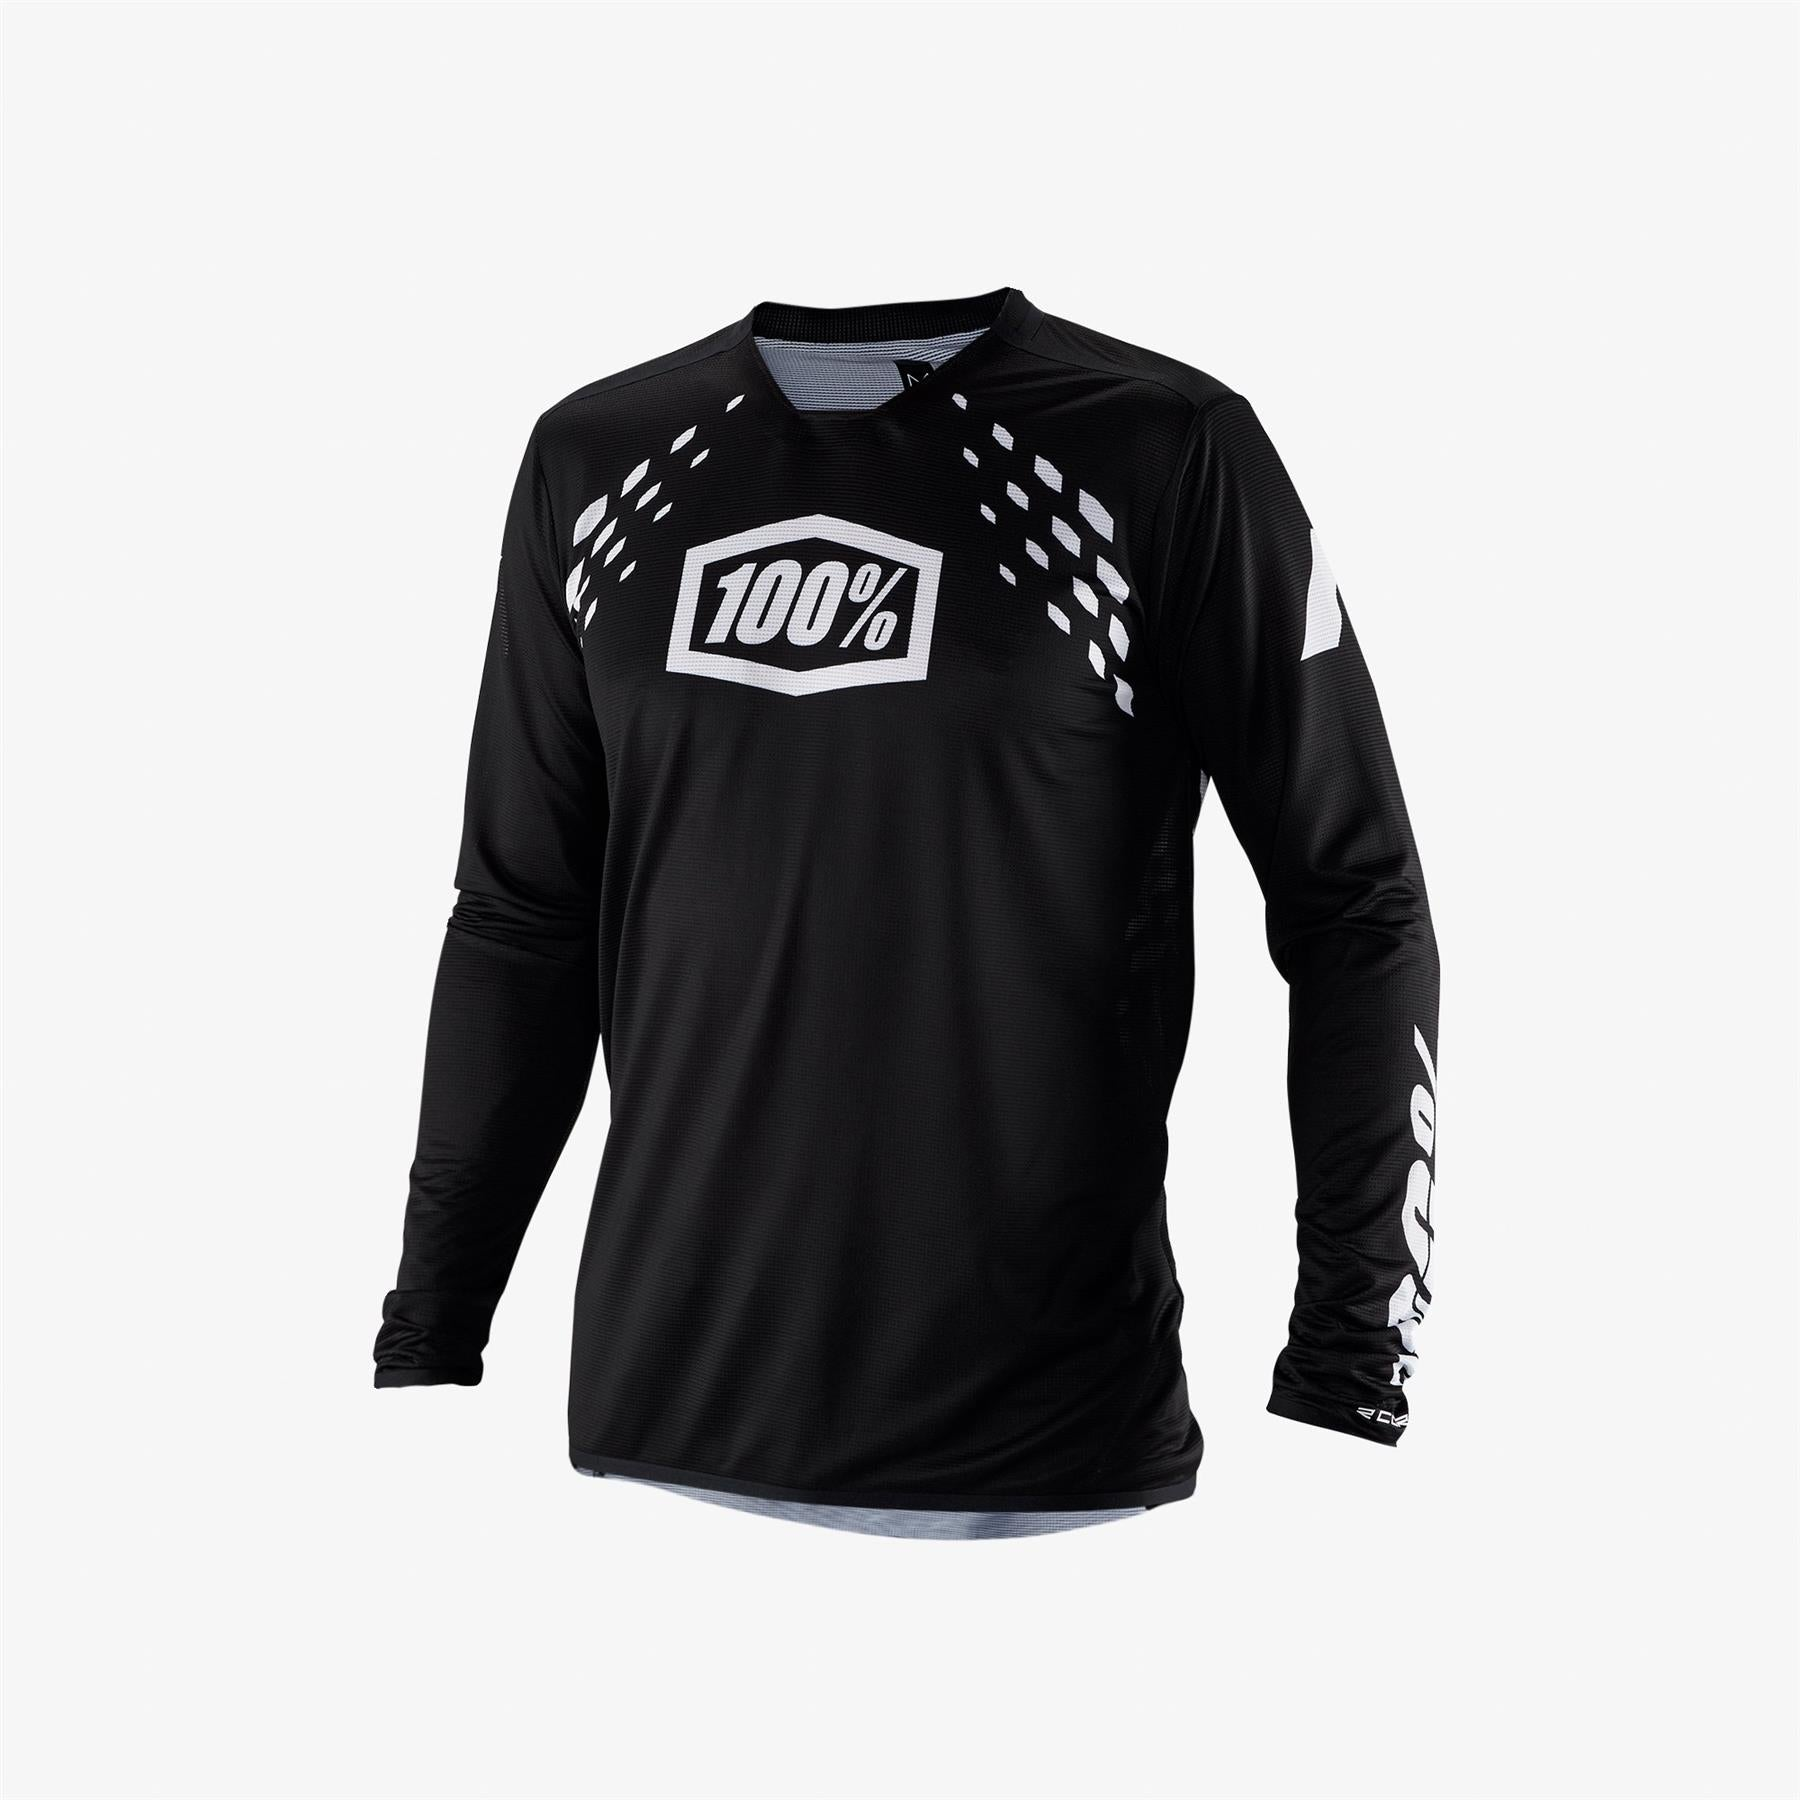 100% R-Core X Race Jersey - Black/White